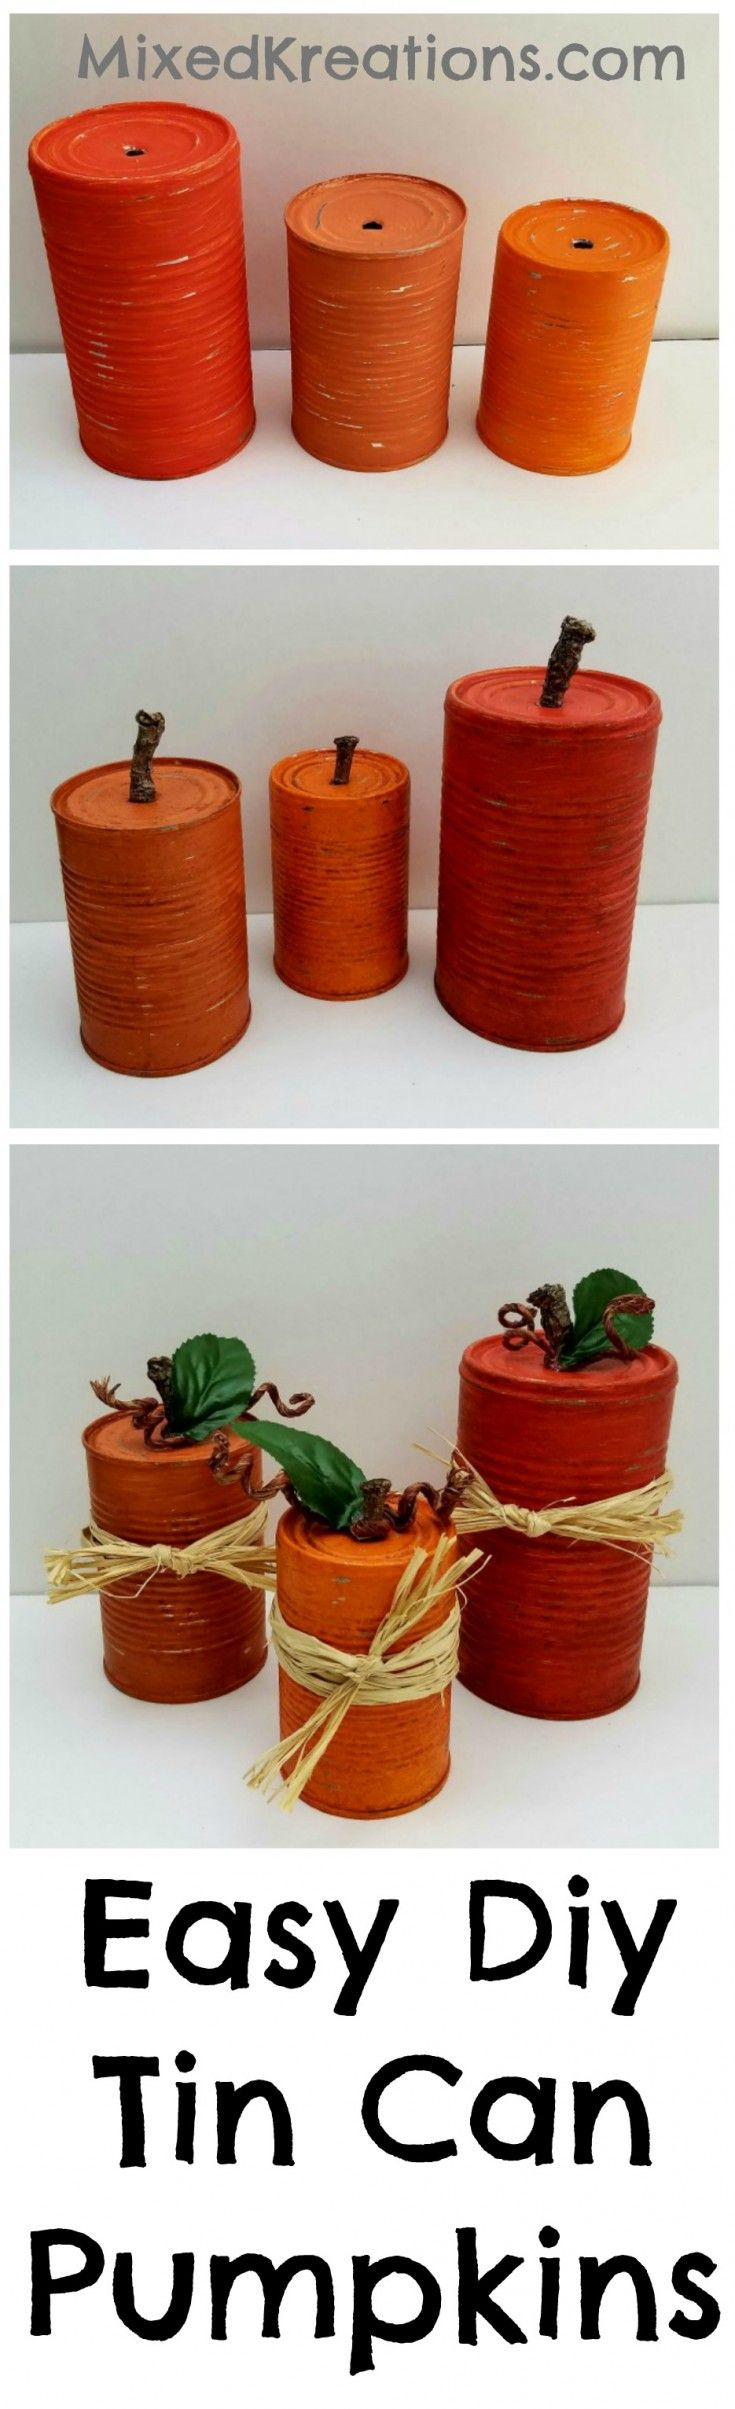 These easy diy tin can pumpkins would look cute in a fall centerpiece, or mixed in with other Fall decor. Click over to see how I made them.